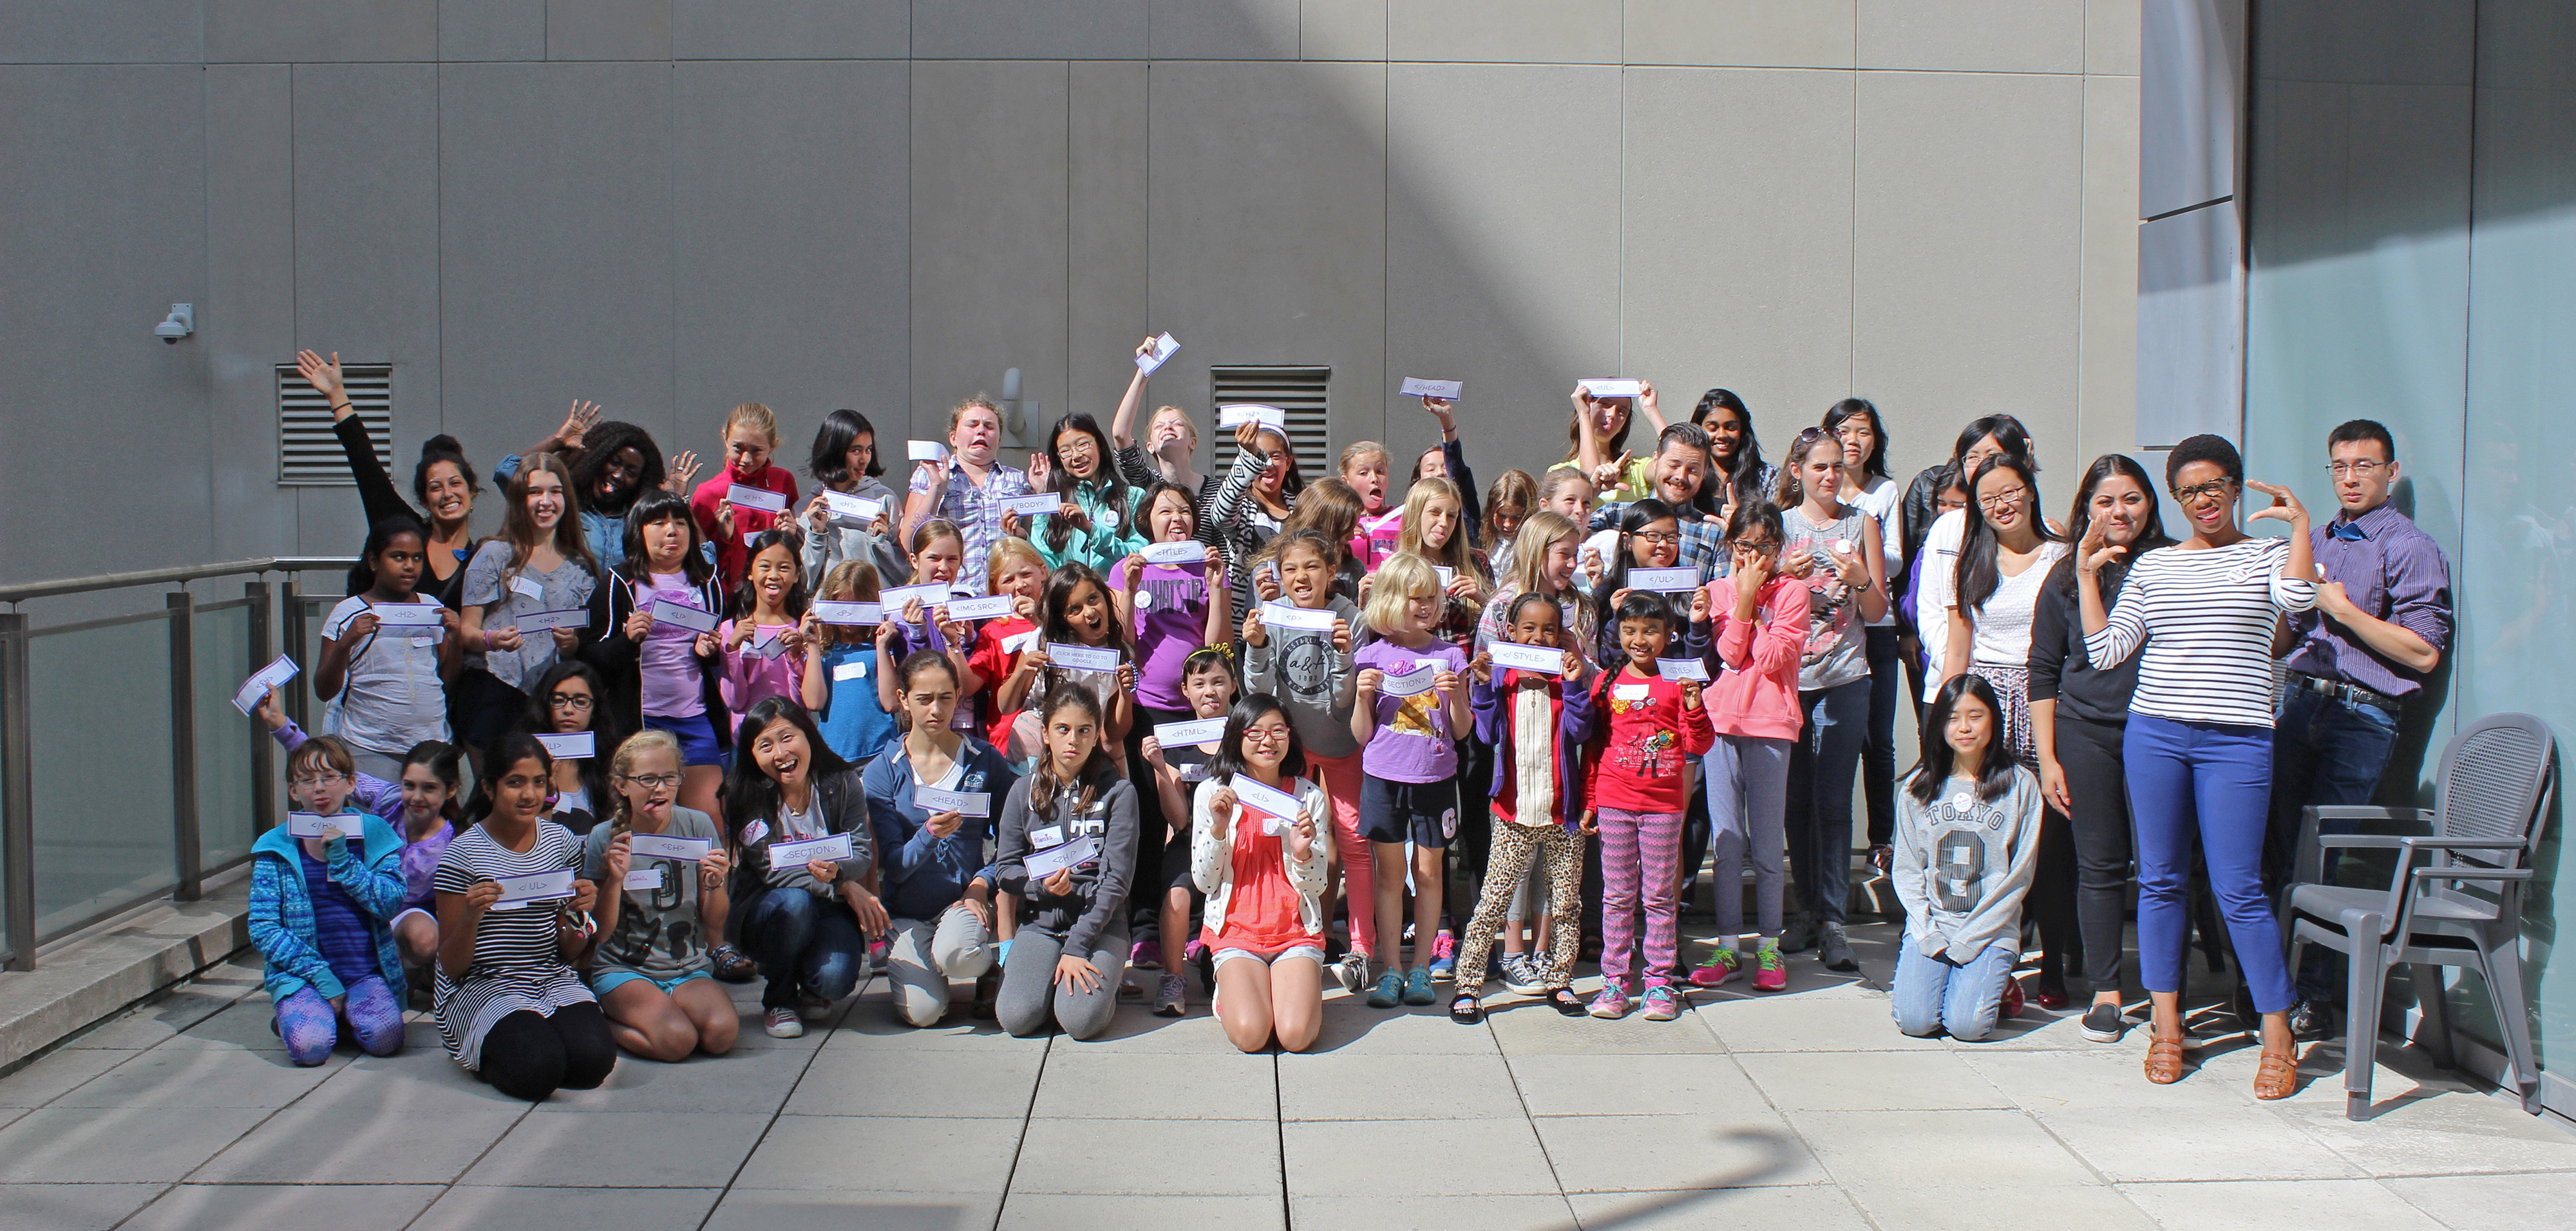 Over 500 kids and 200 volunteers spent the summer learning to code